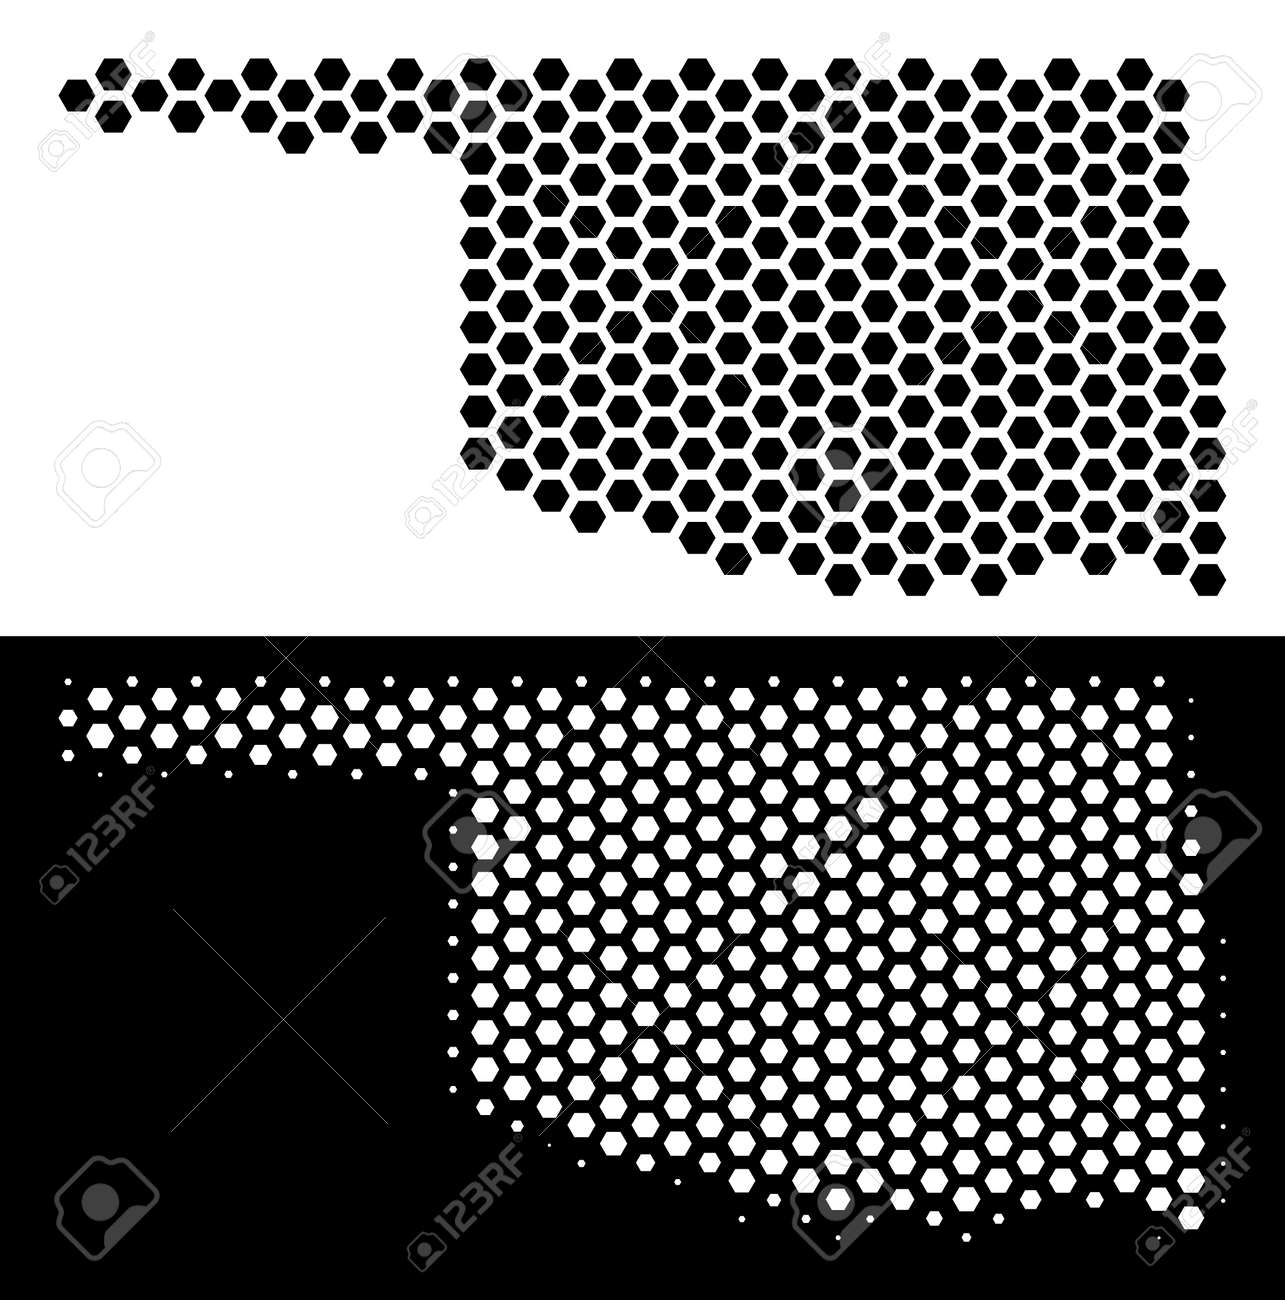 Hex Tile Oklahoma State map  Vector geographic plan in black